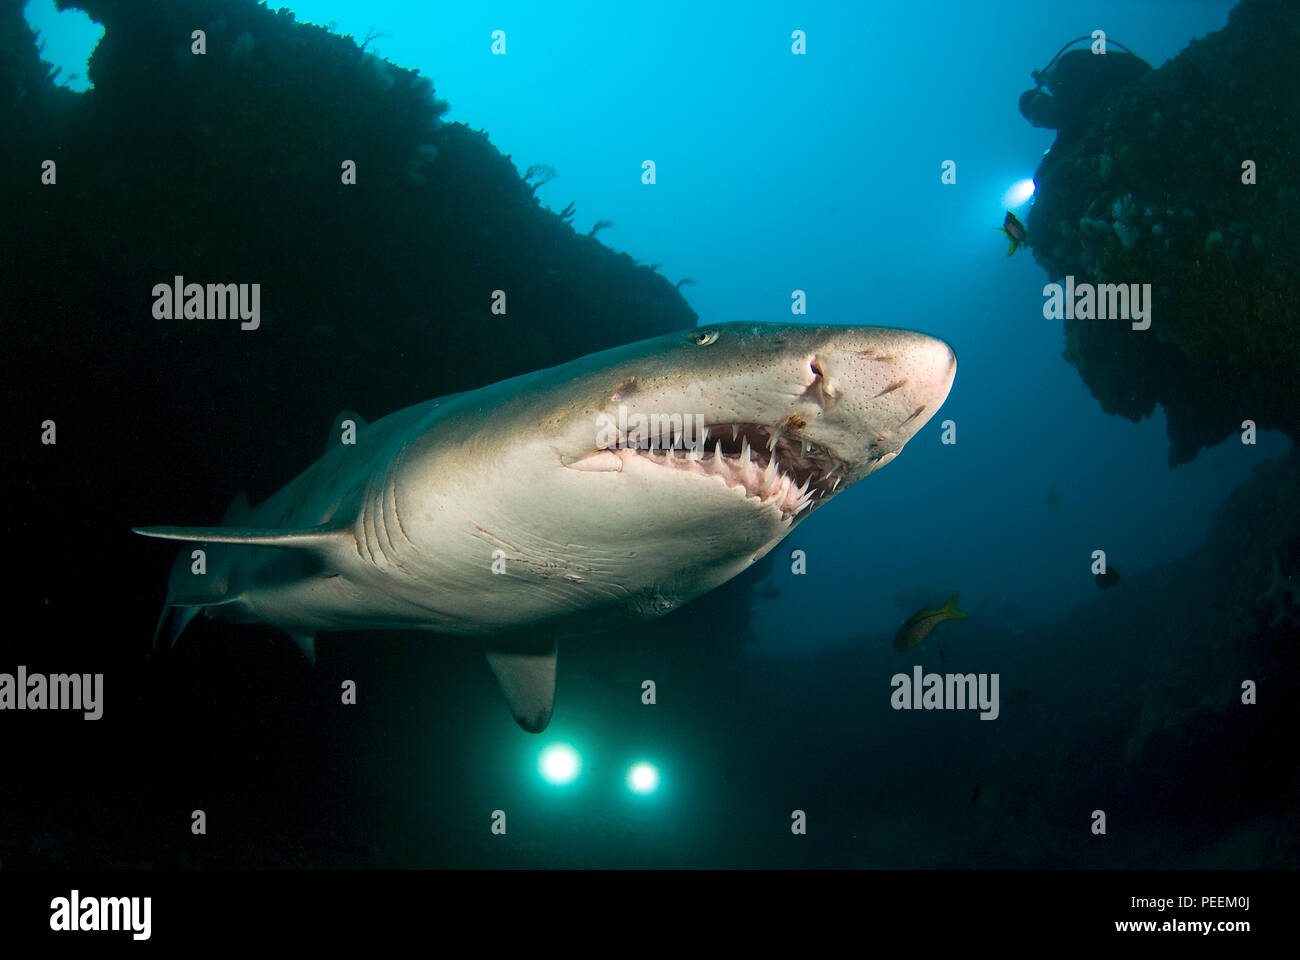 Ragged tooth shark (Carcharias taurus synonym Eugomphodus taurus), Carcharias taurus), Aliwal Shoals, South Africa - Stock Image